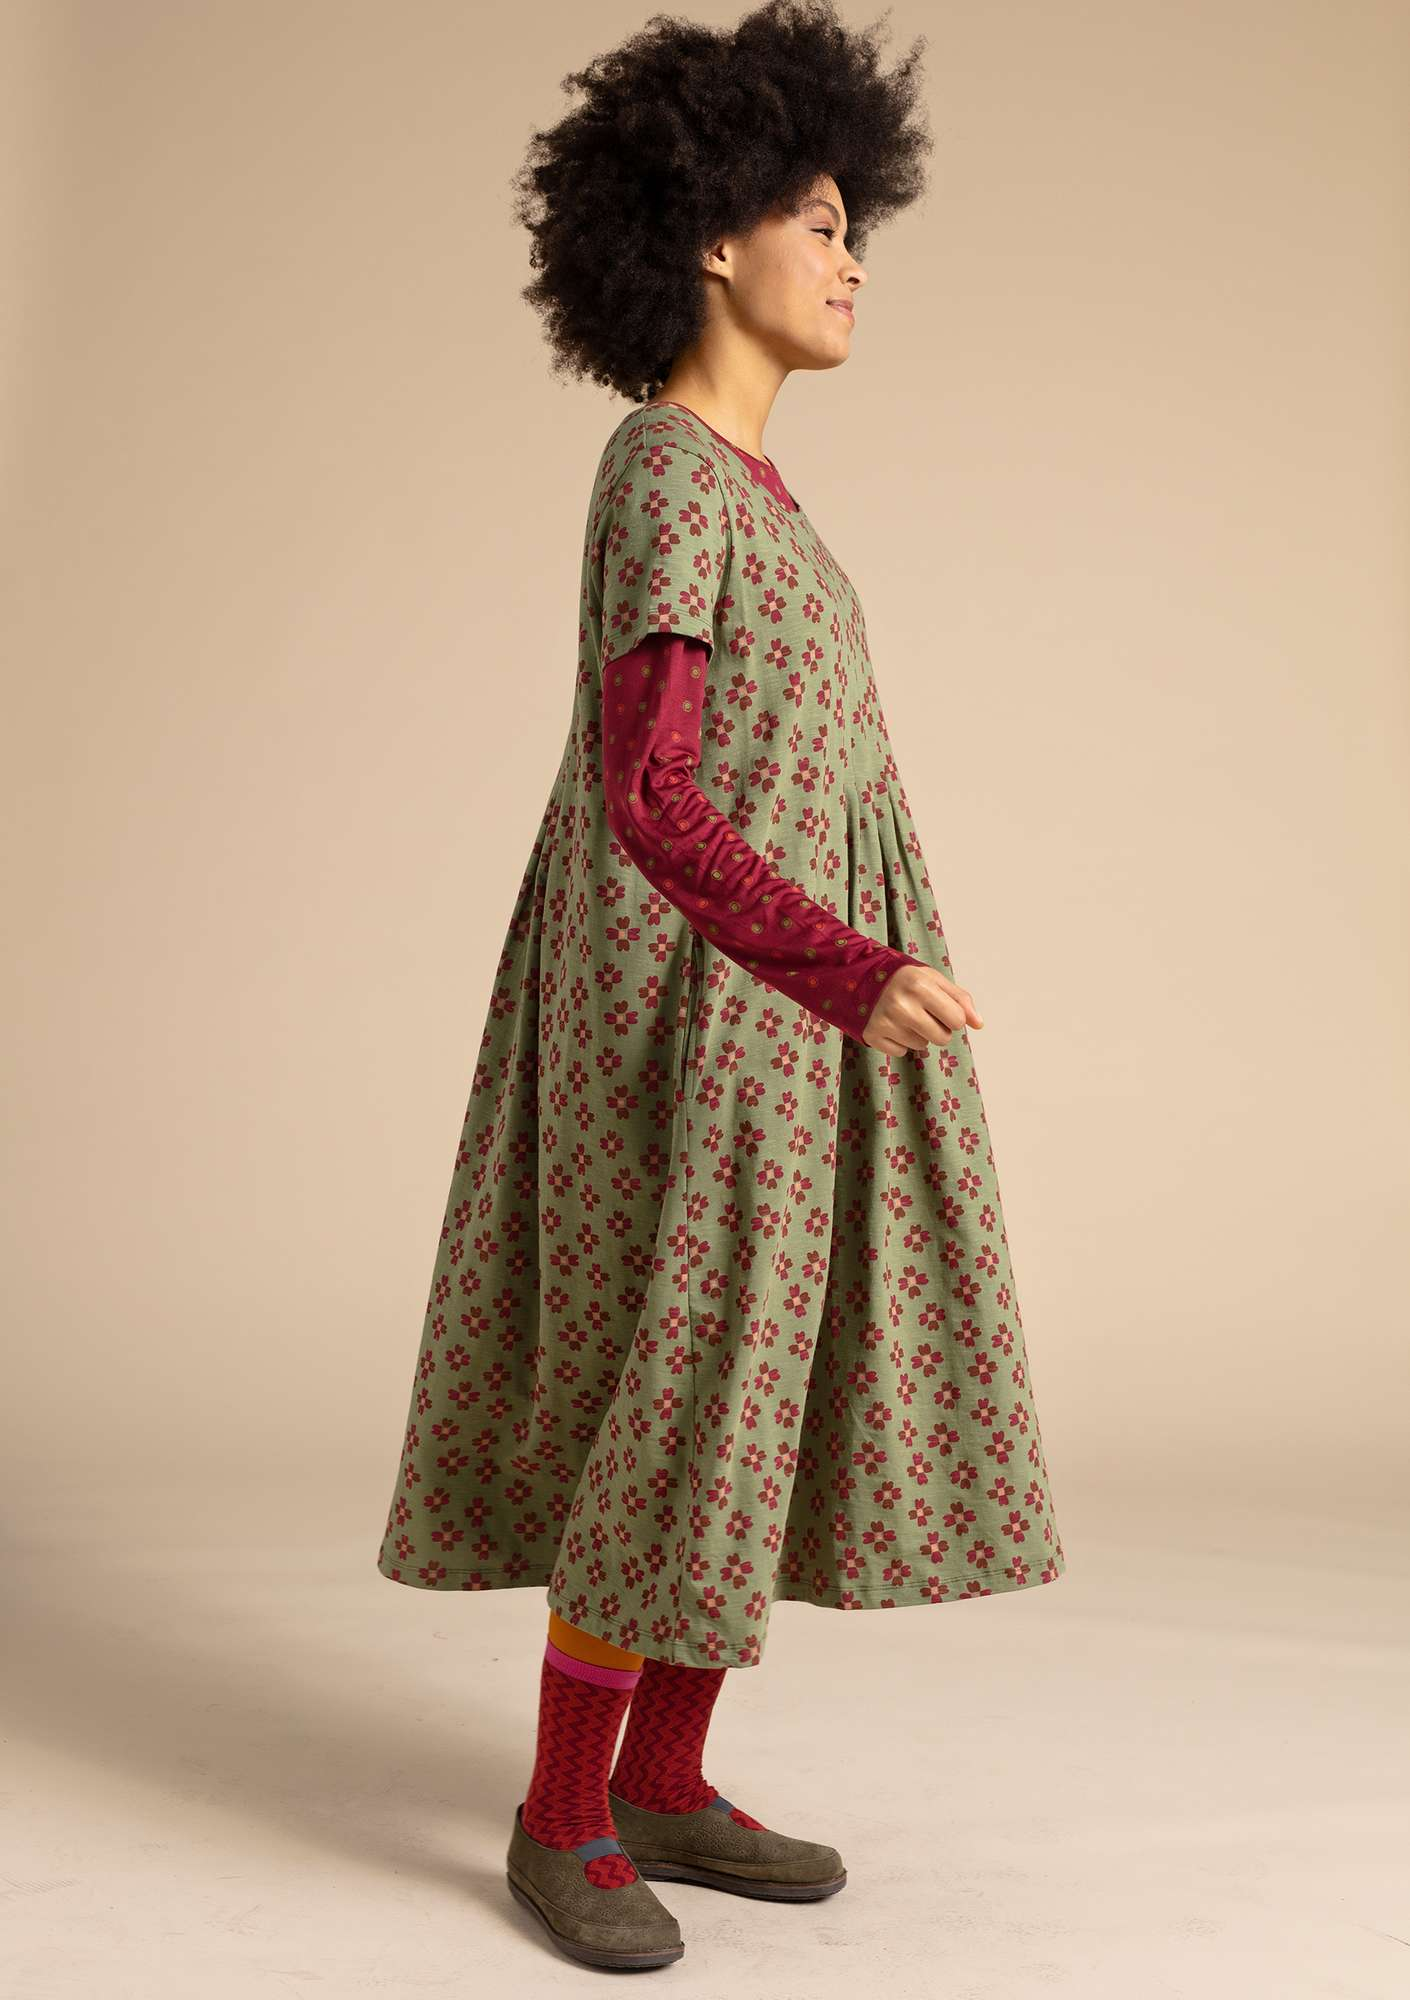 """Livia"" dress in eco-cotton sage/patterned"